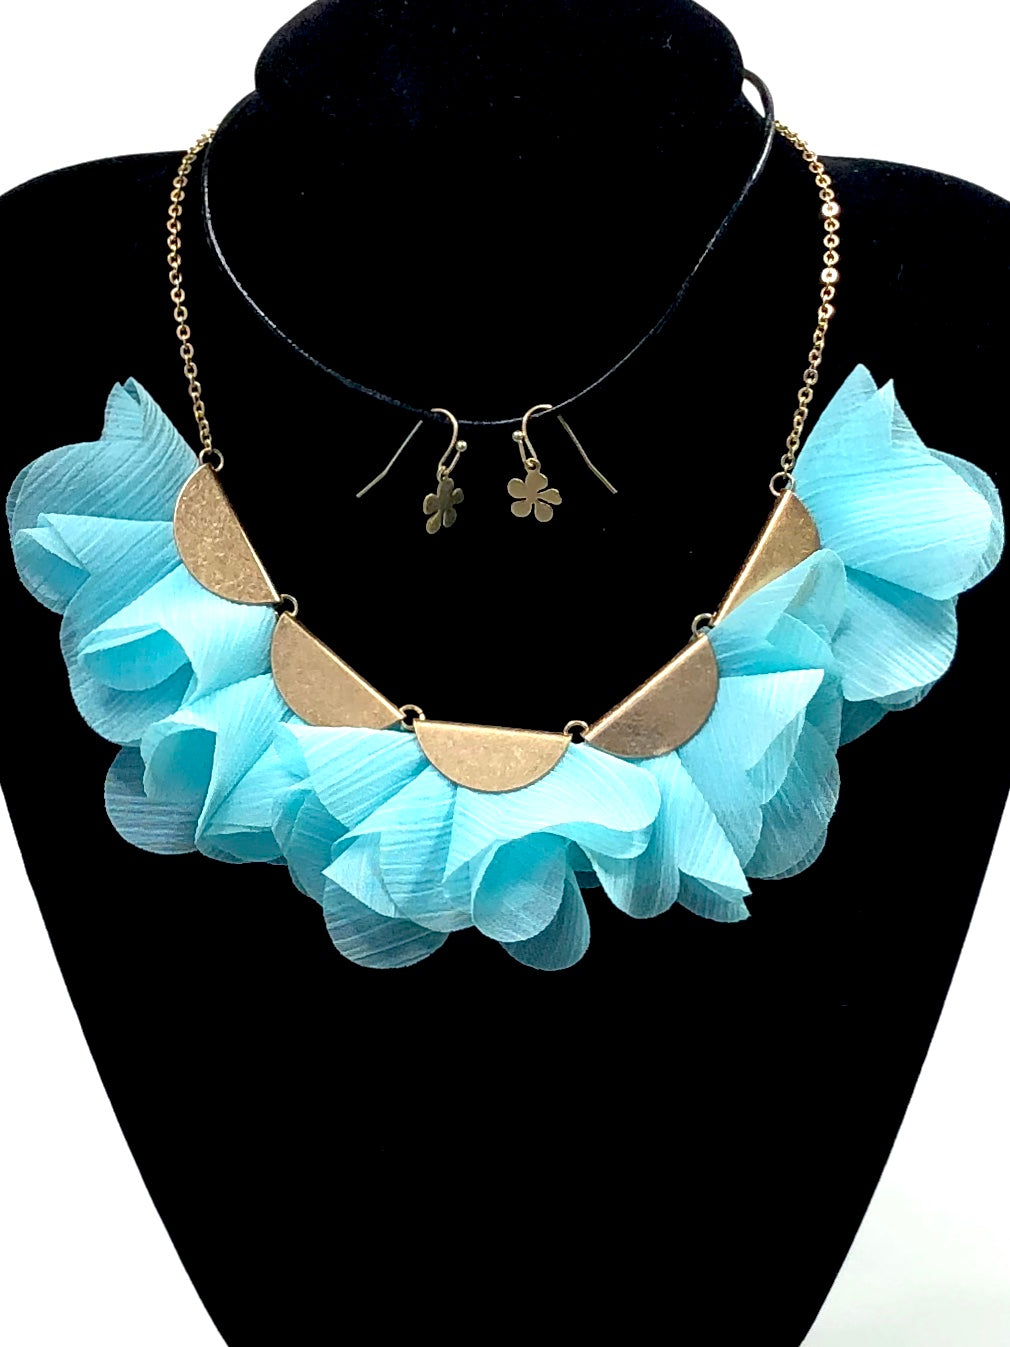 Linen Floral Petals Necklace & Earring Set |2 colors|